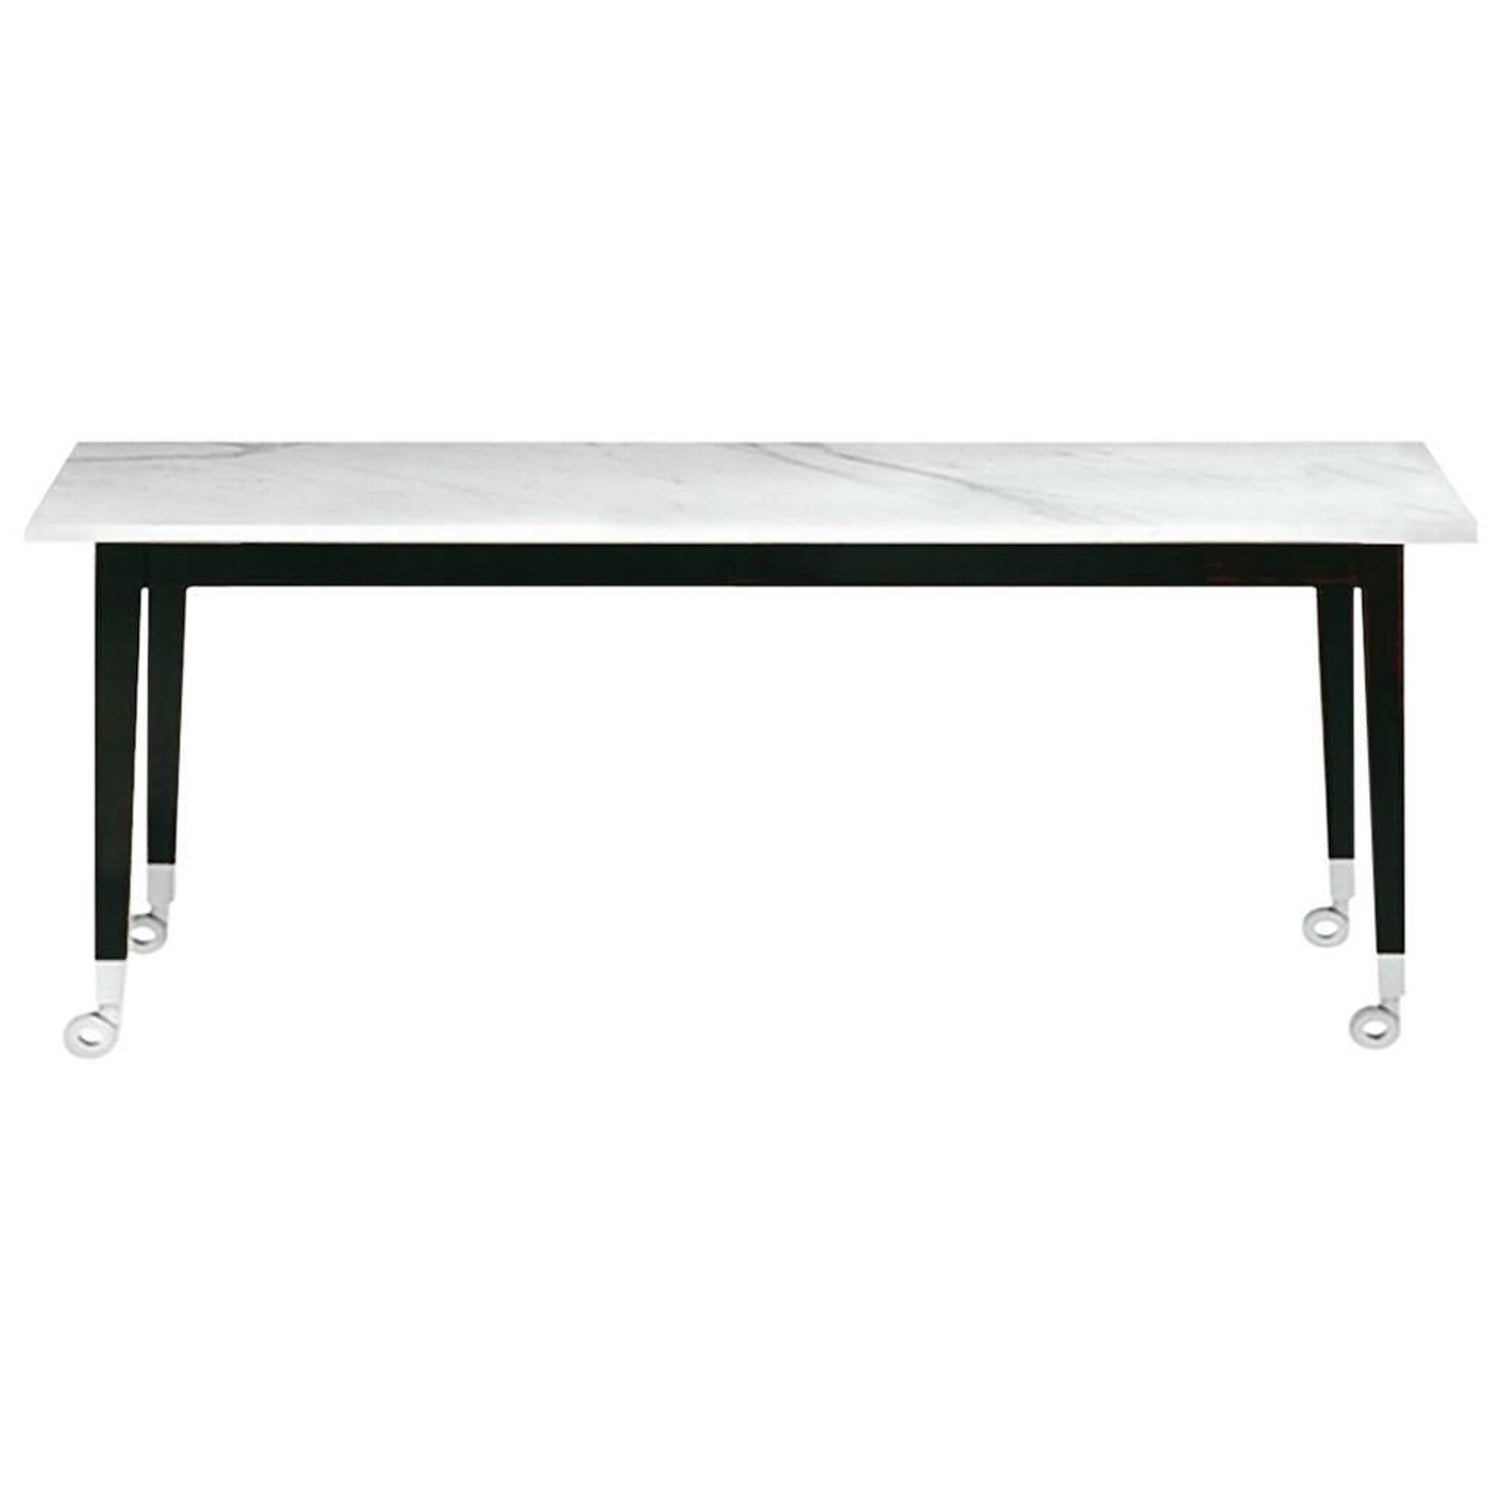 Neoz Carrara Marble Cad Table Designed By Philippe Starck For Driade